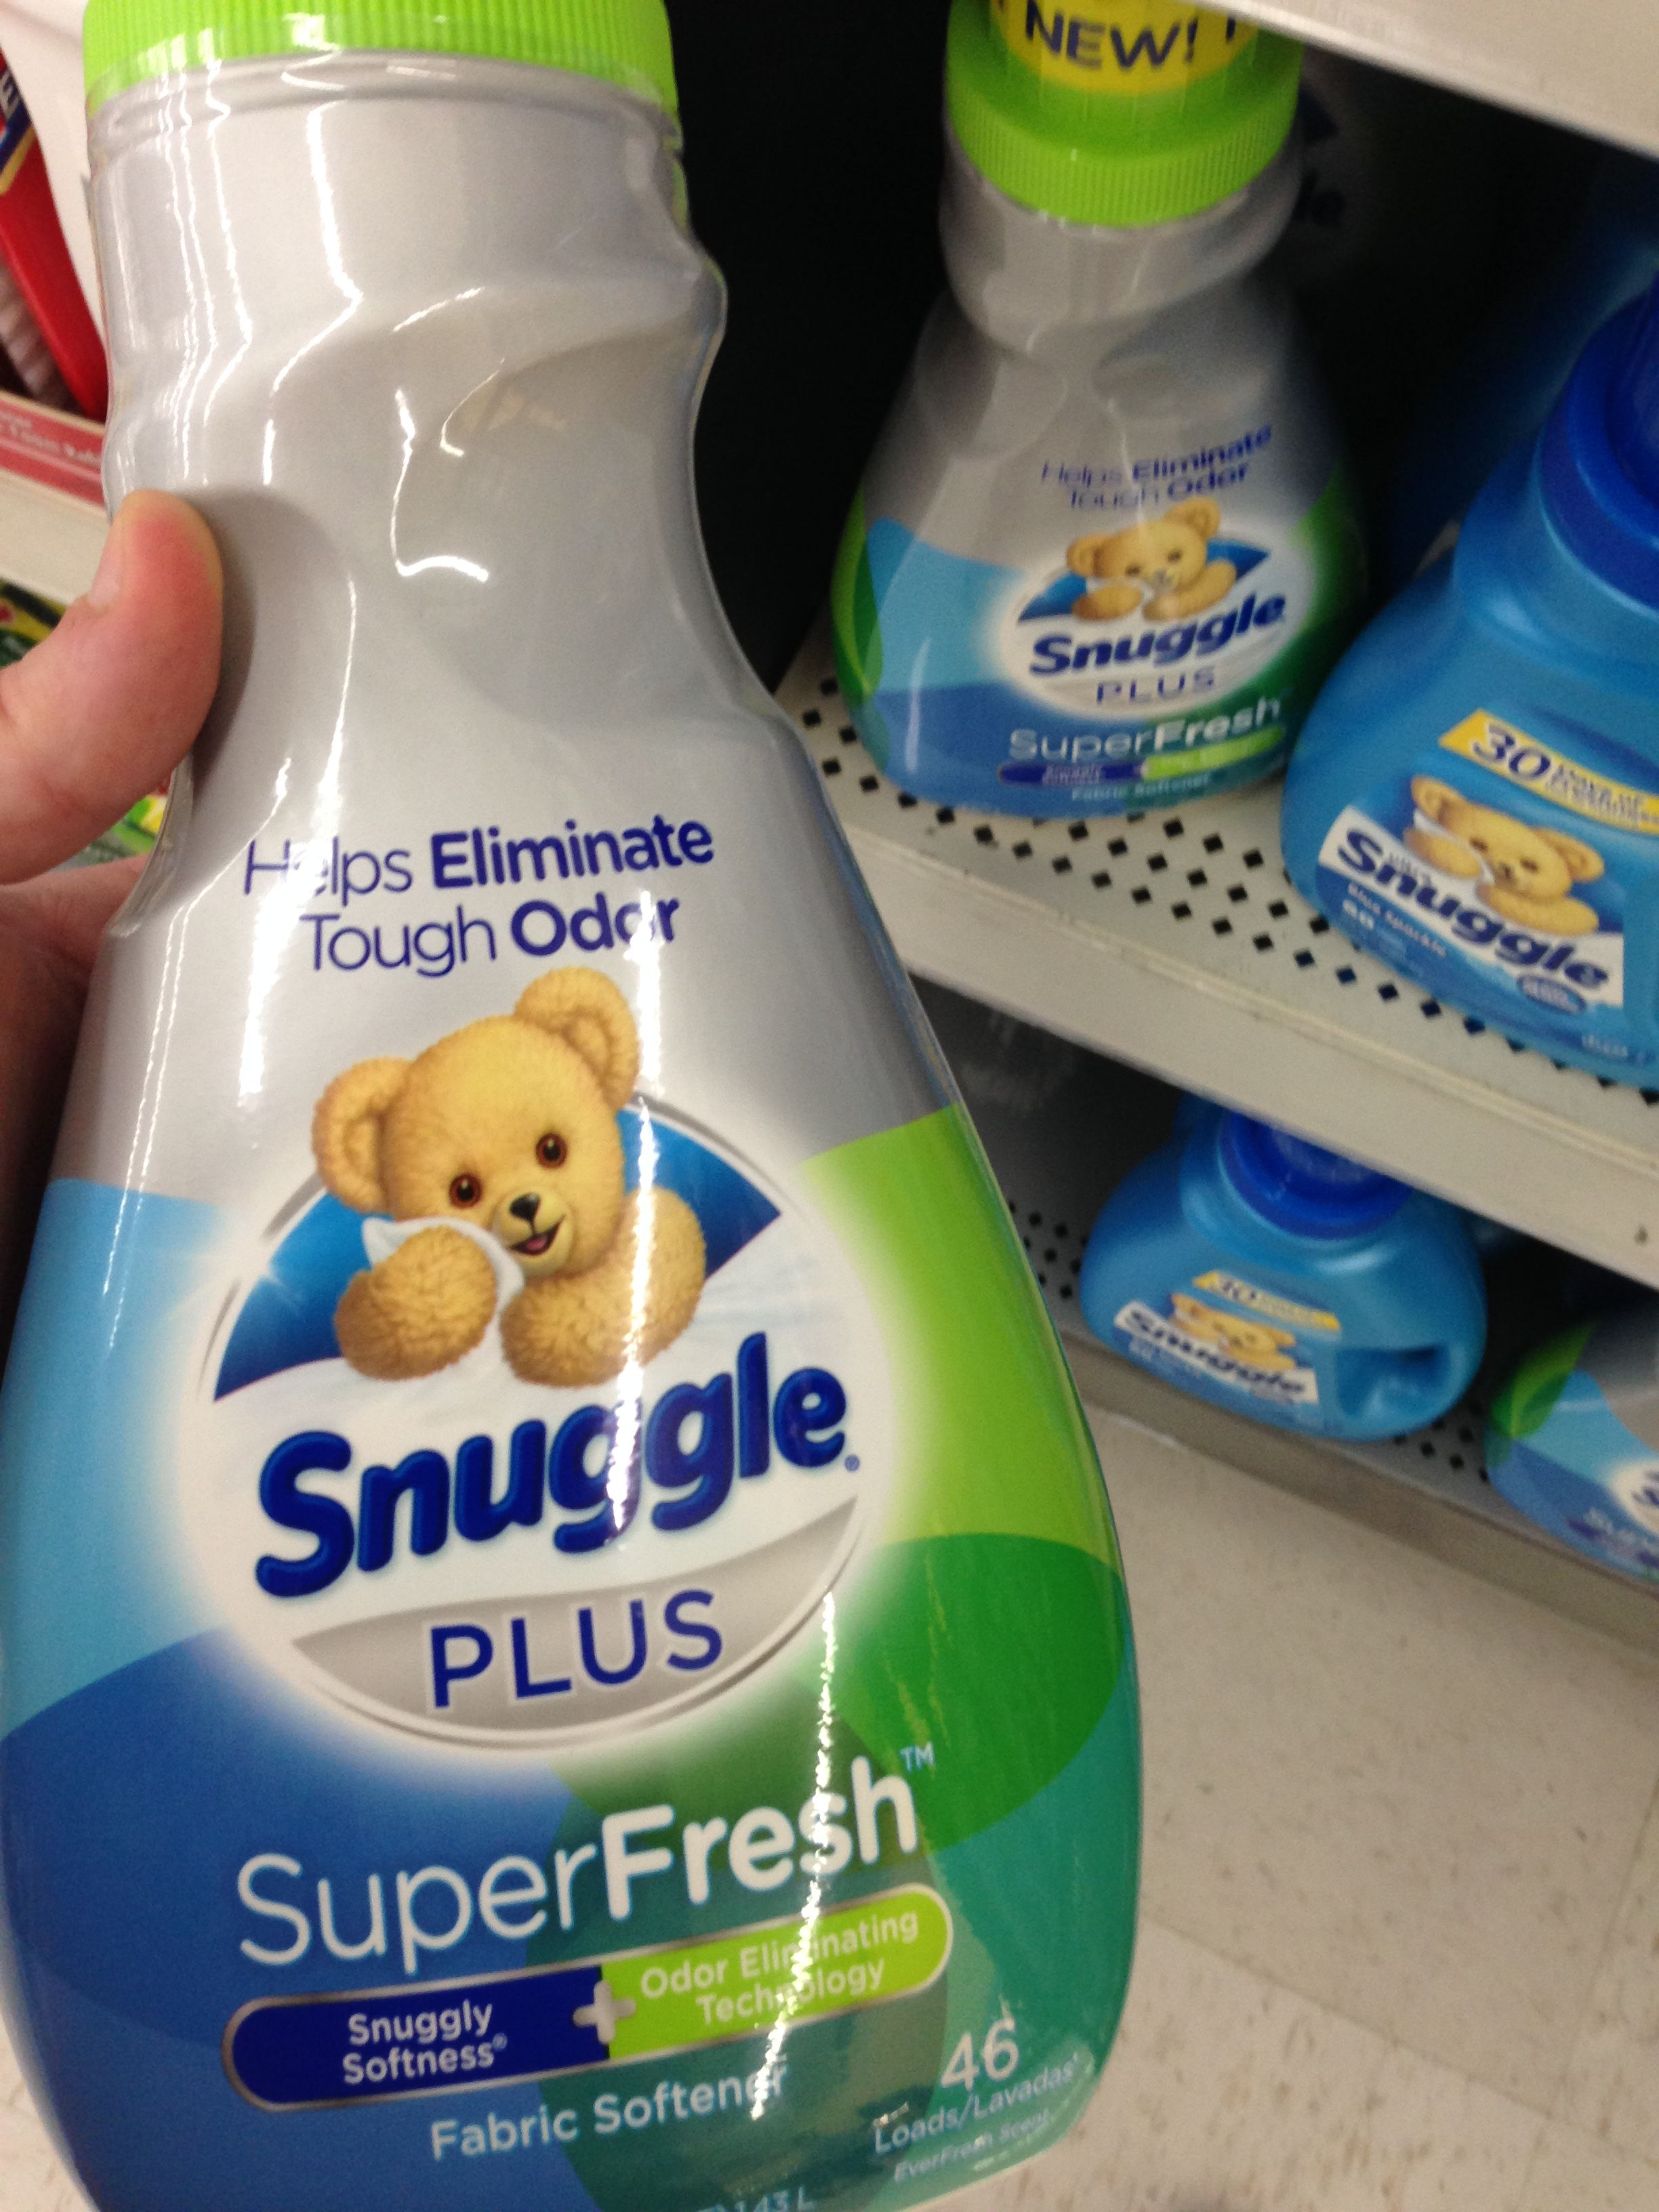 I finally found Snuggle plus super fresh at walmart!